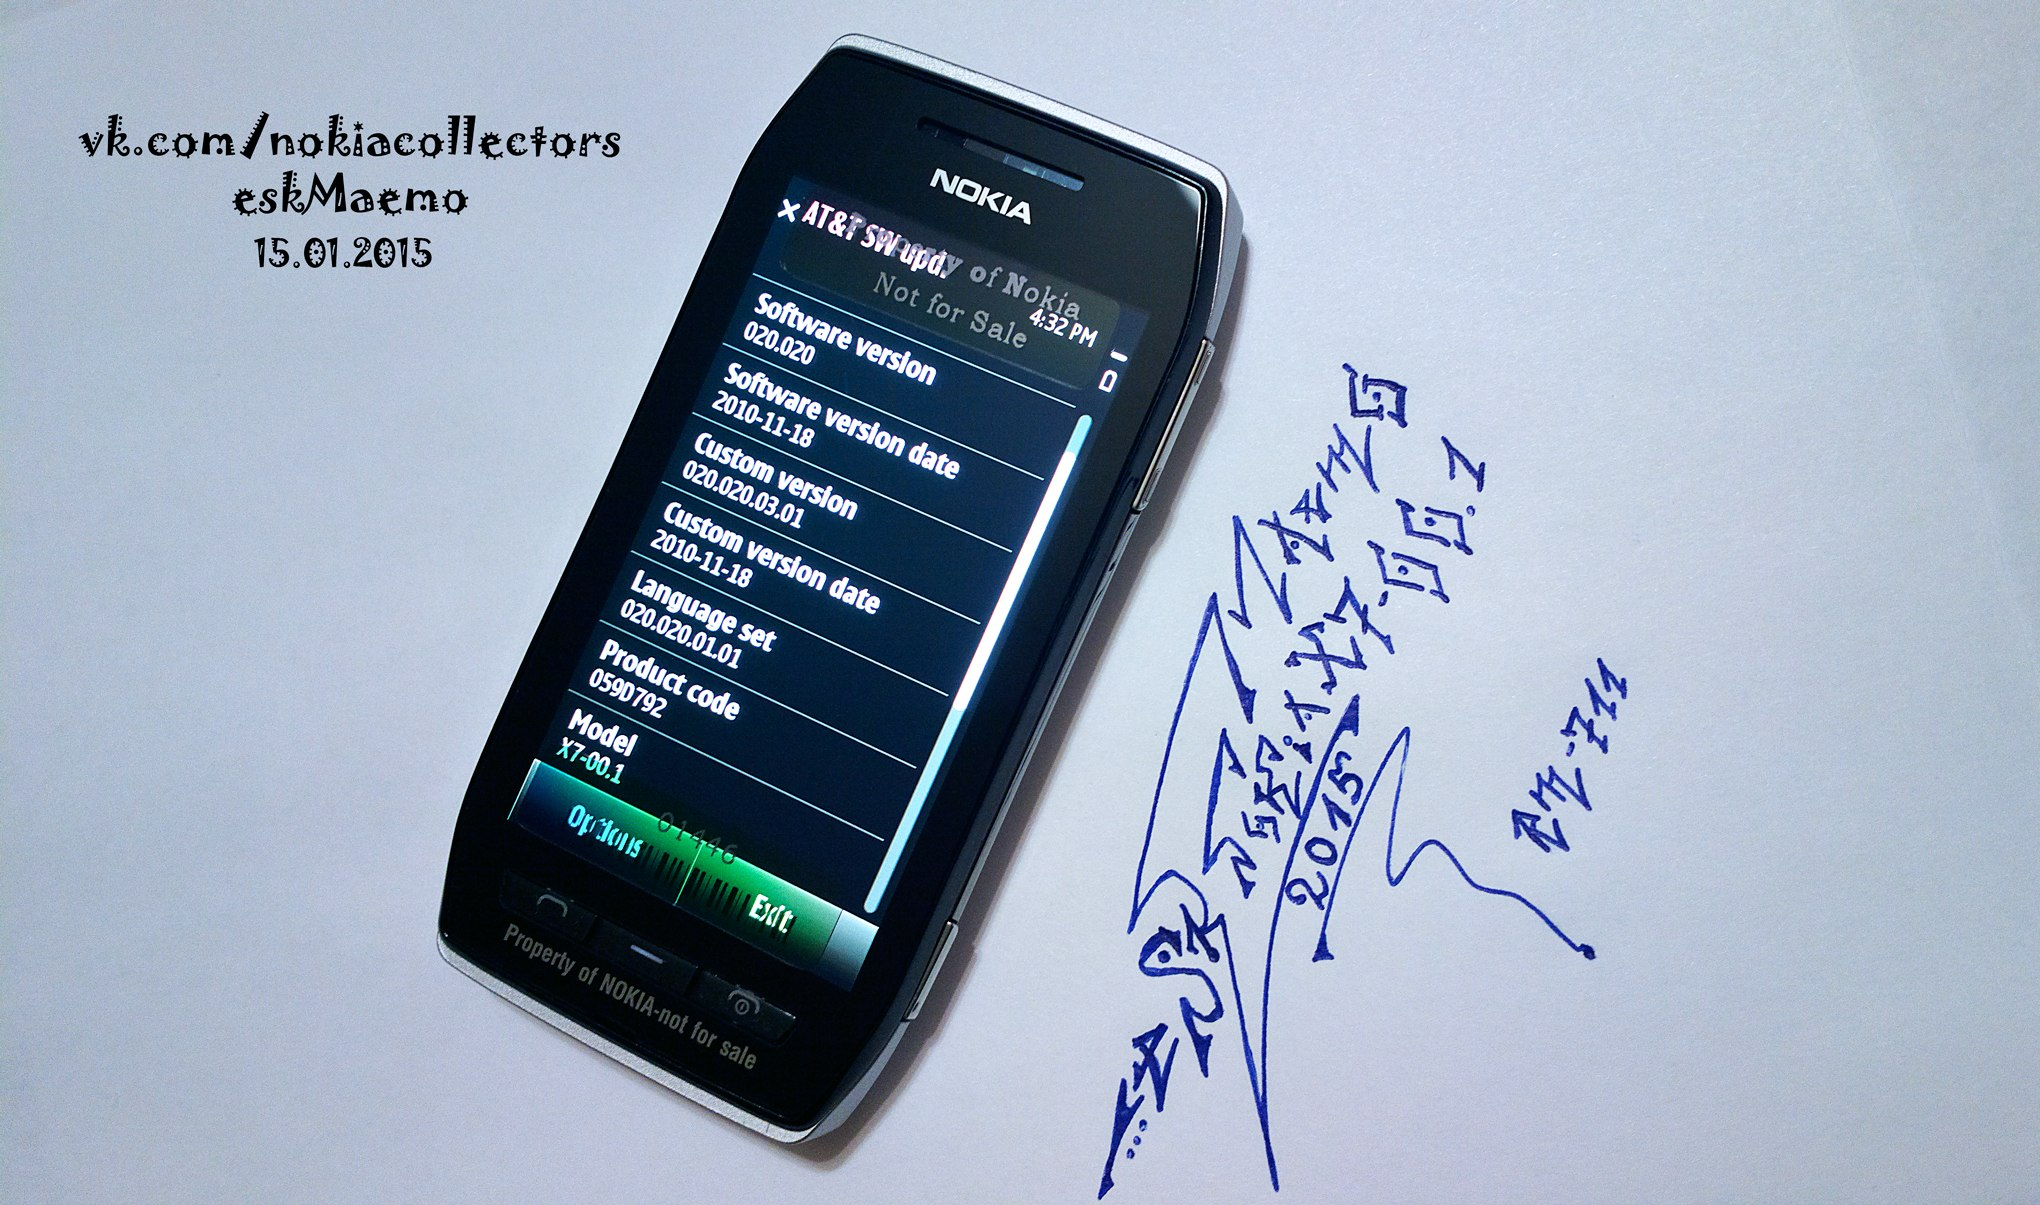 Nokia x7 00 software - Click This Bar To View The Full Image